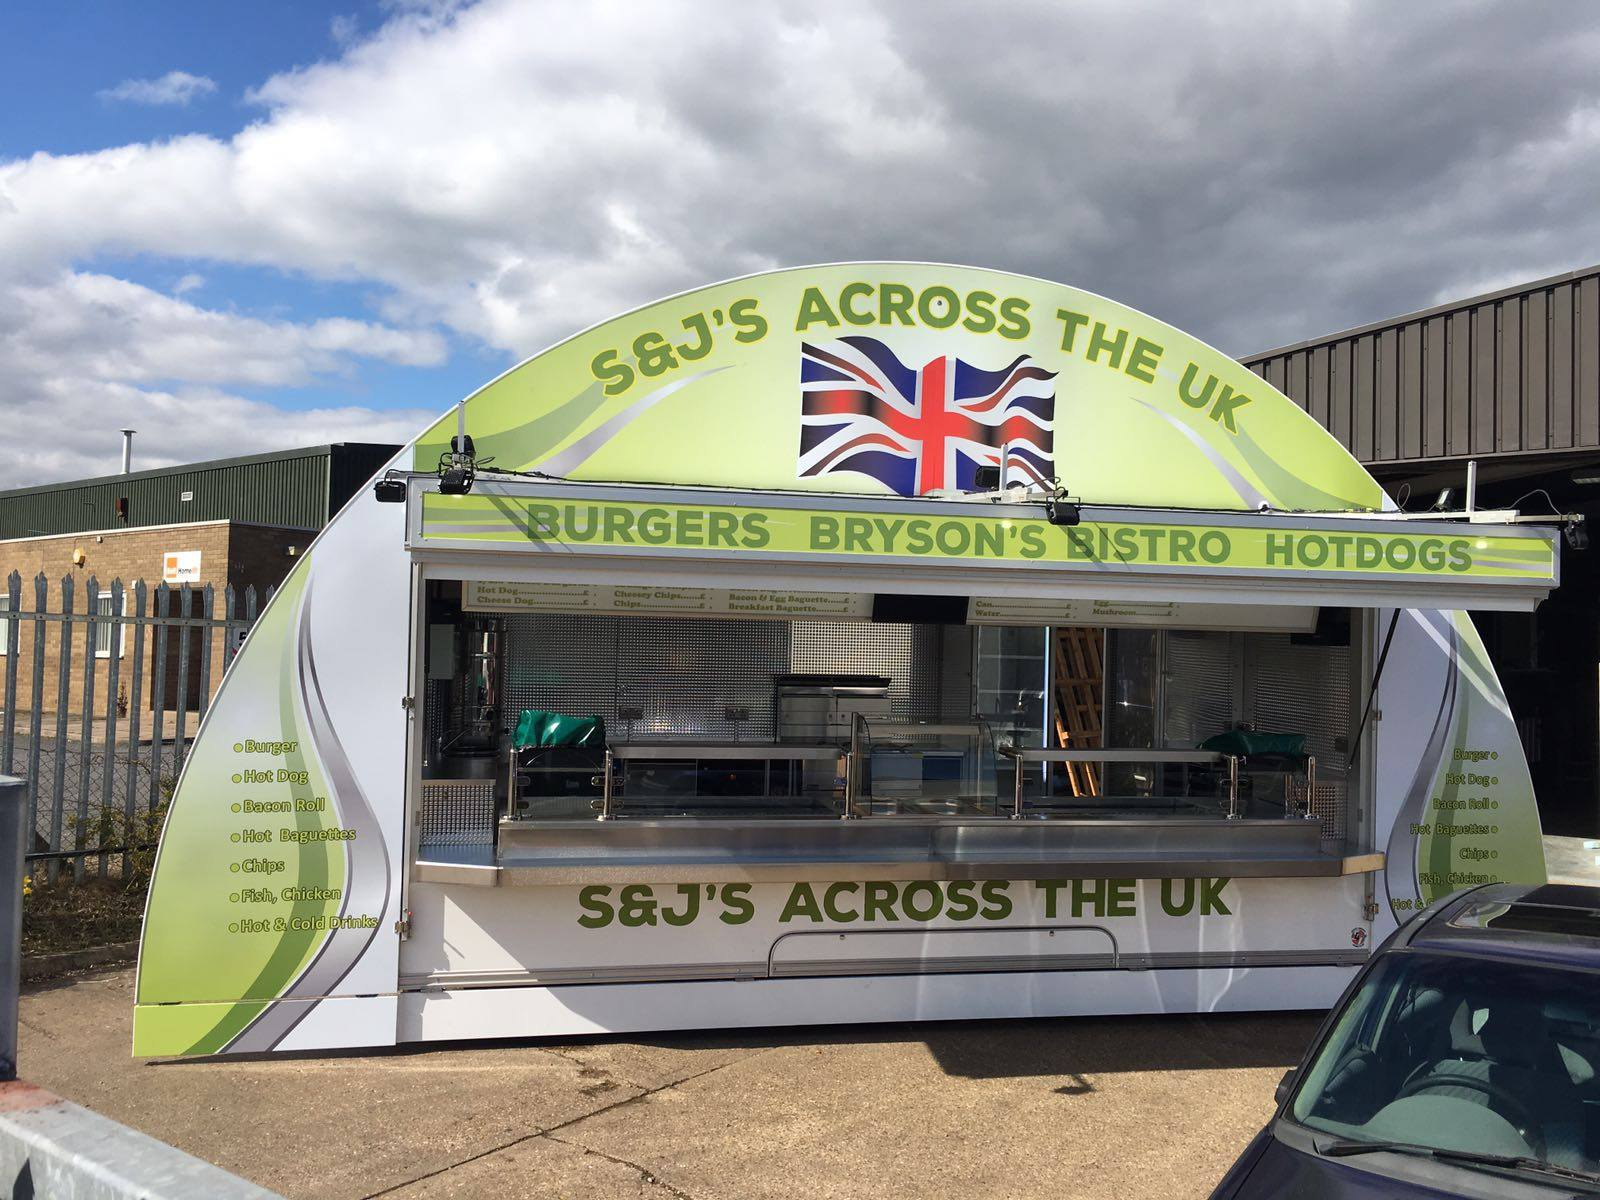 S & J Mobile Catering, Static Catering Units -The ultimate in mobile Catering Unit 2 Hampshire, Berkshire, Dorset, Surrey, Wiltshire and the UK Events and Function Catering 11